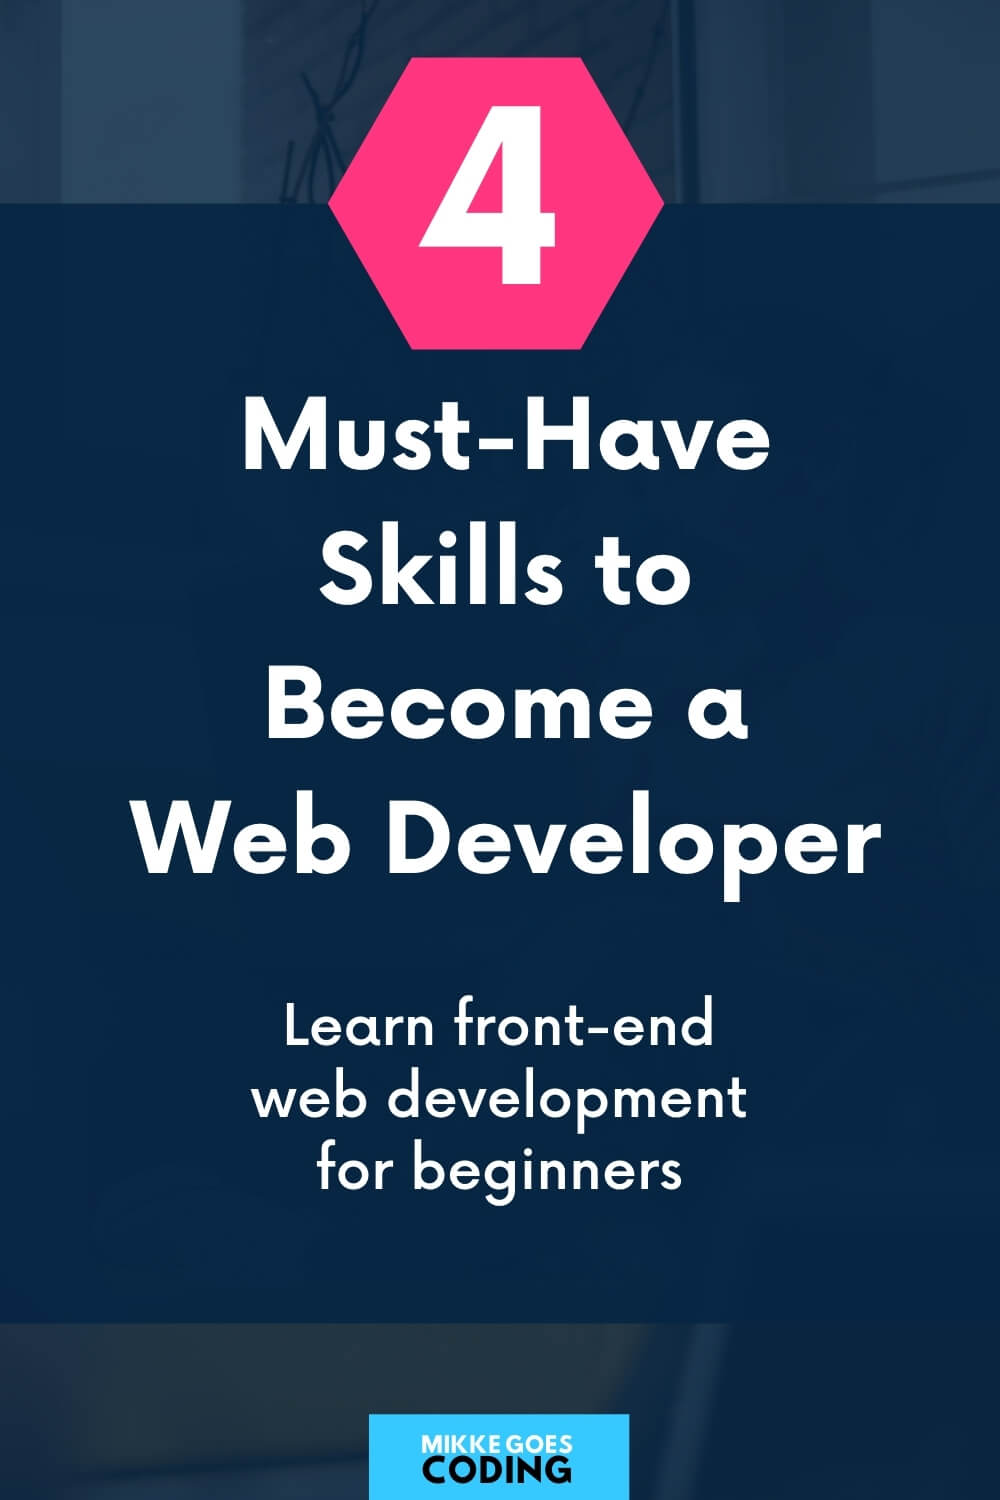 4 Must-Have Skills to Become a Web Developer